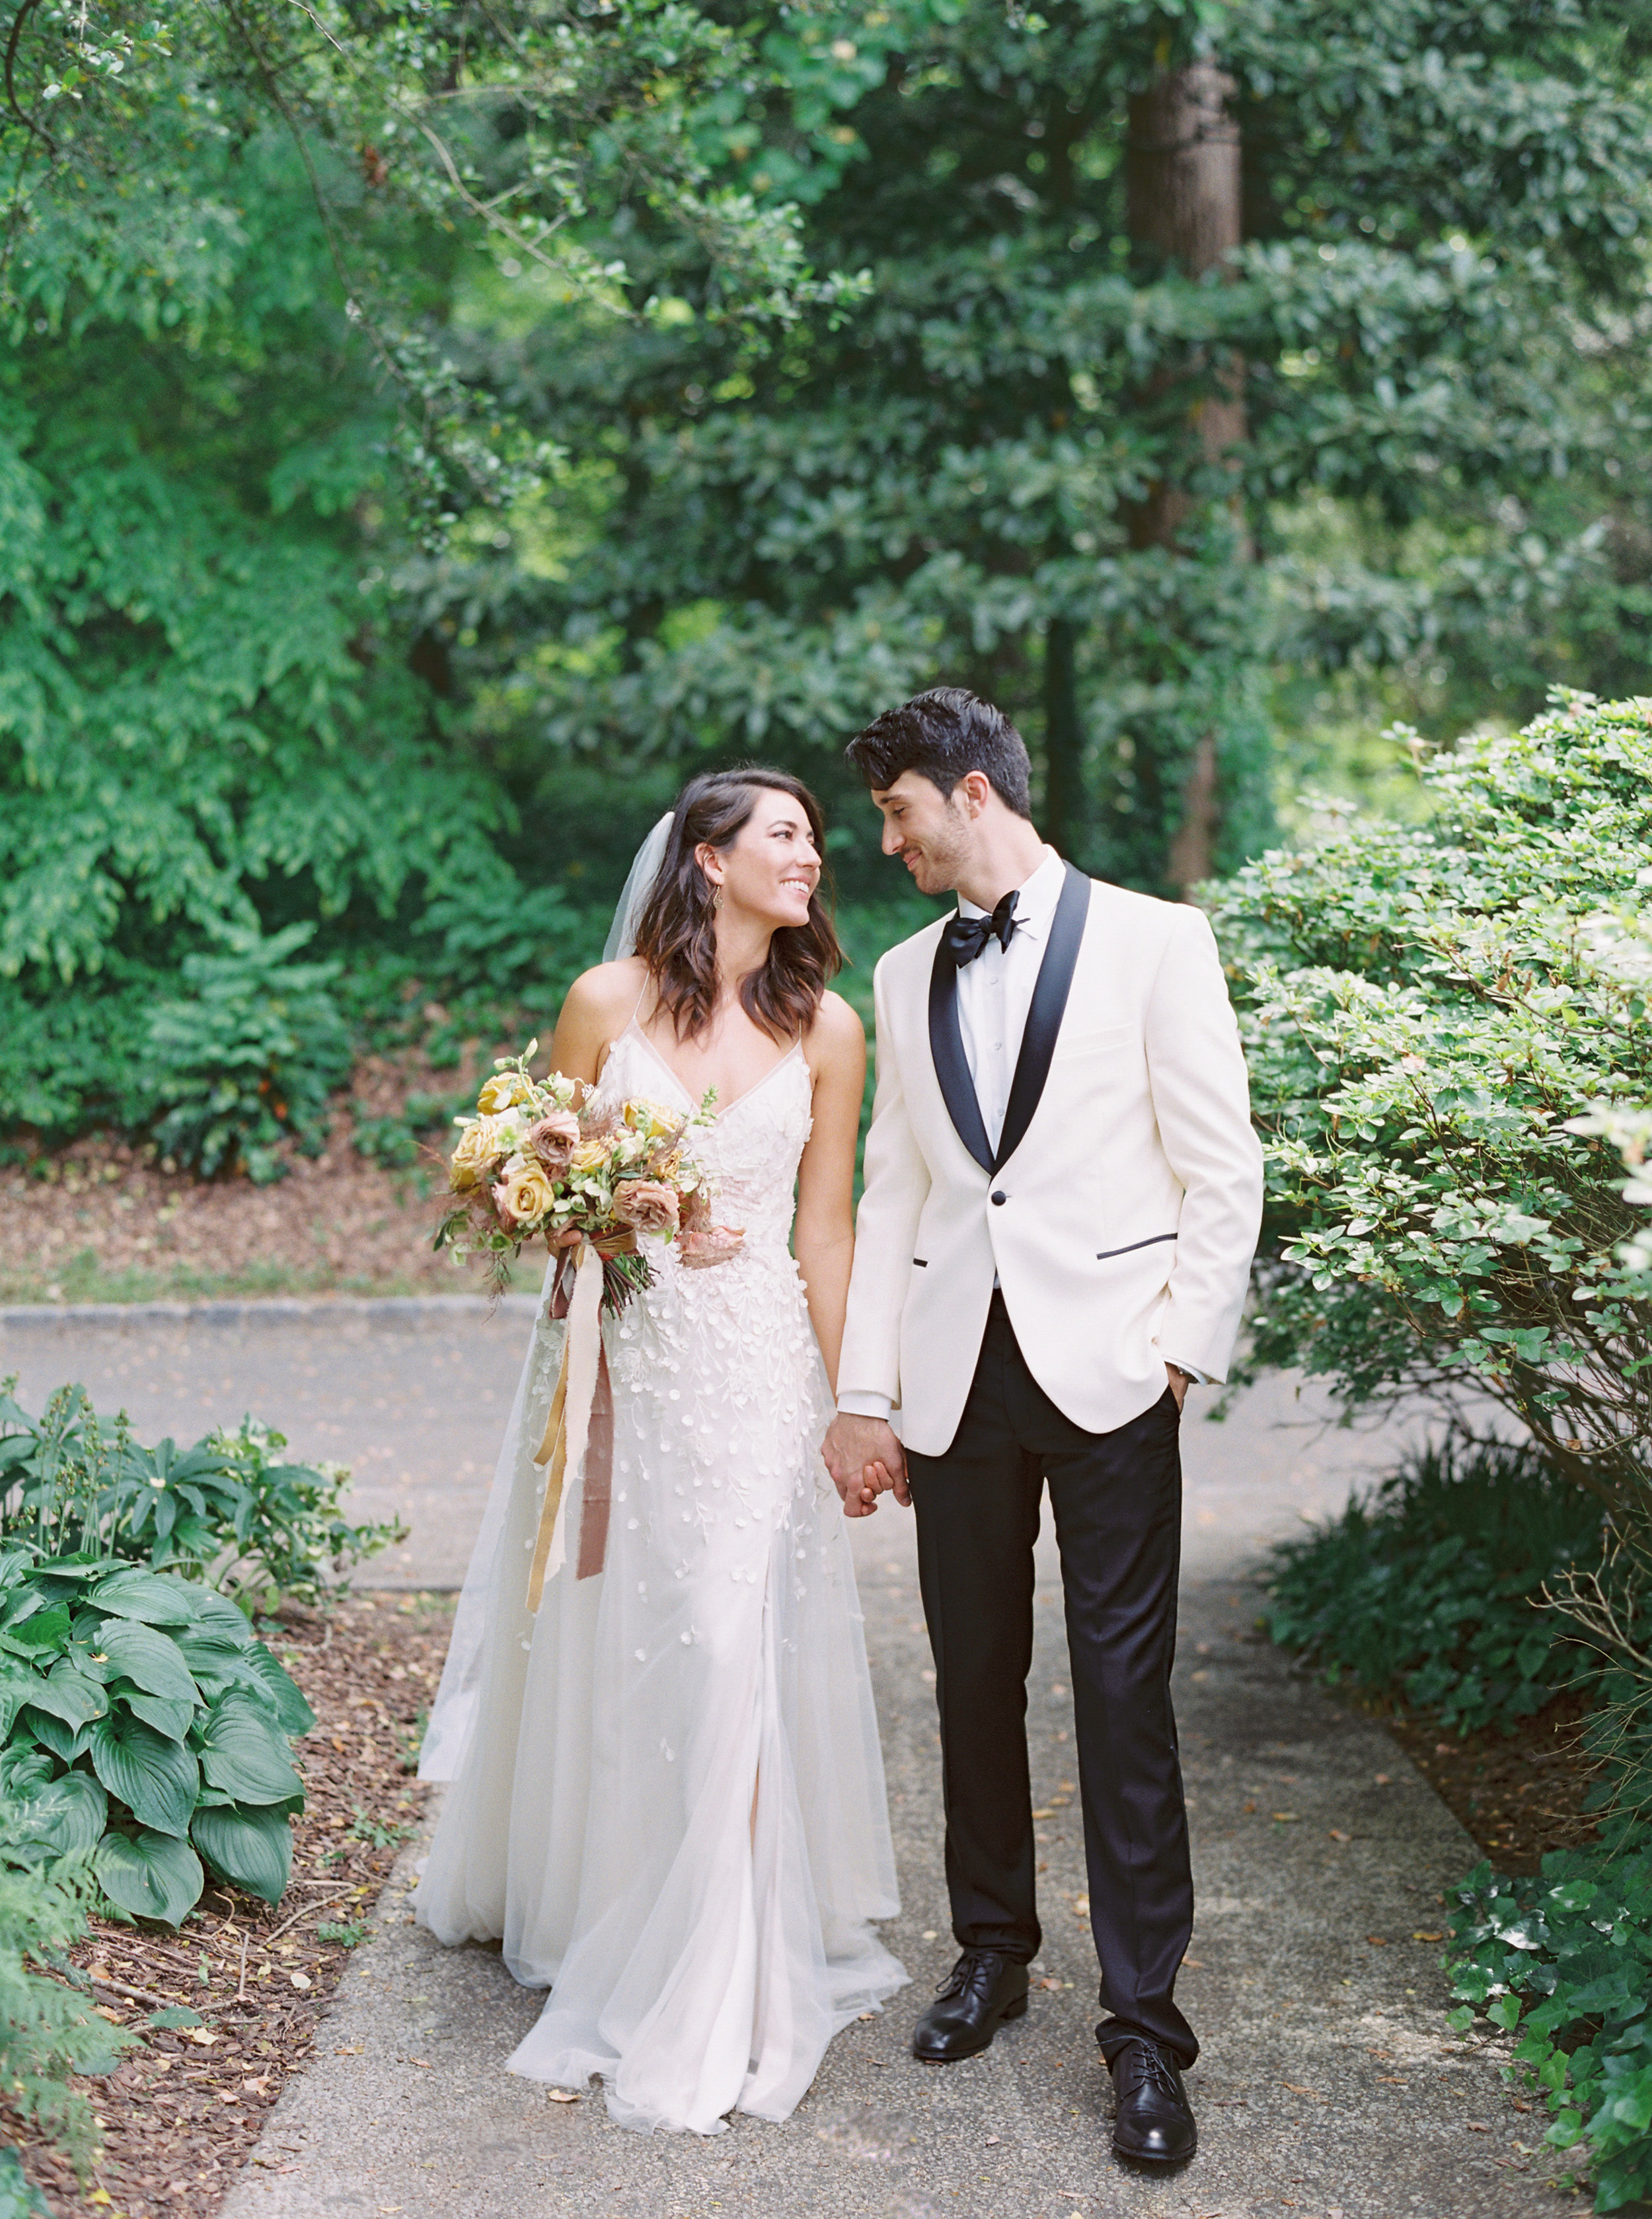 Cator-woolford-gardens-wedding-photos-atlanta-film-wedding-photographer--4.jpg